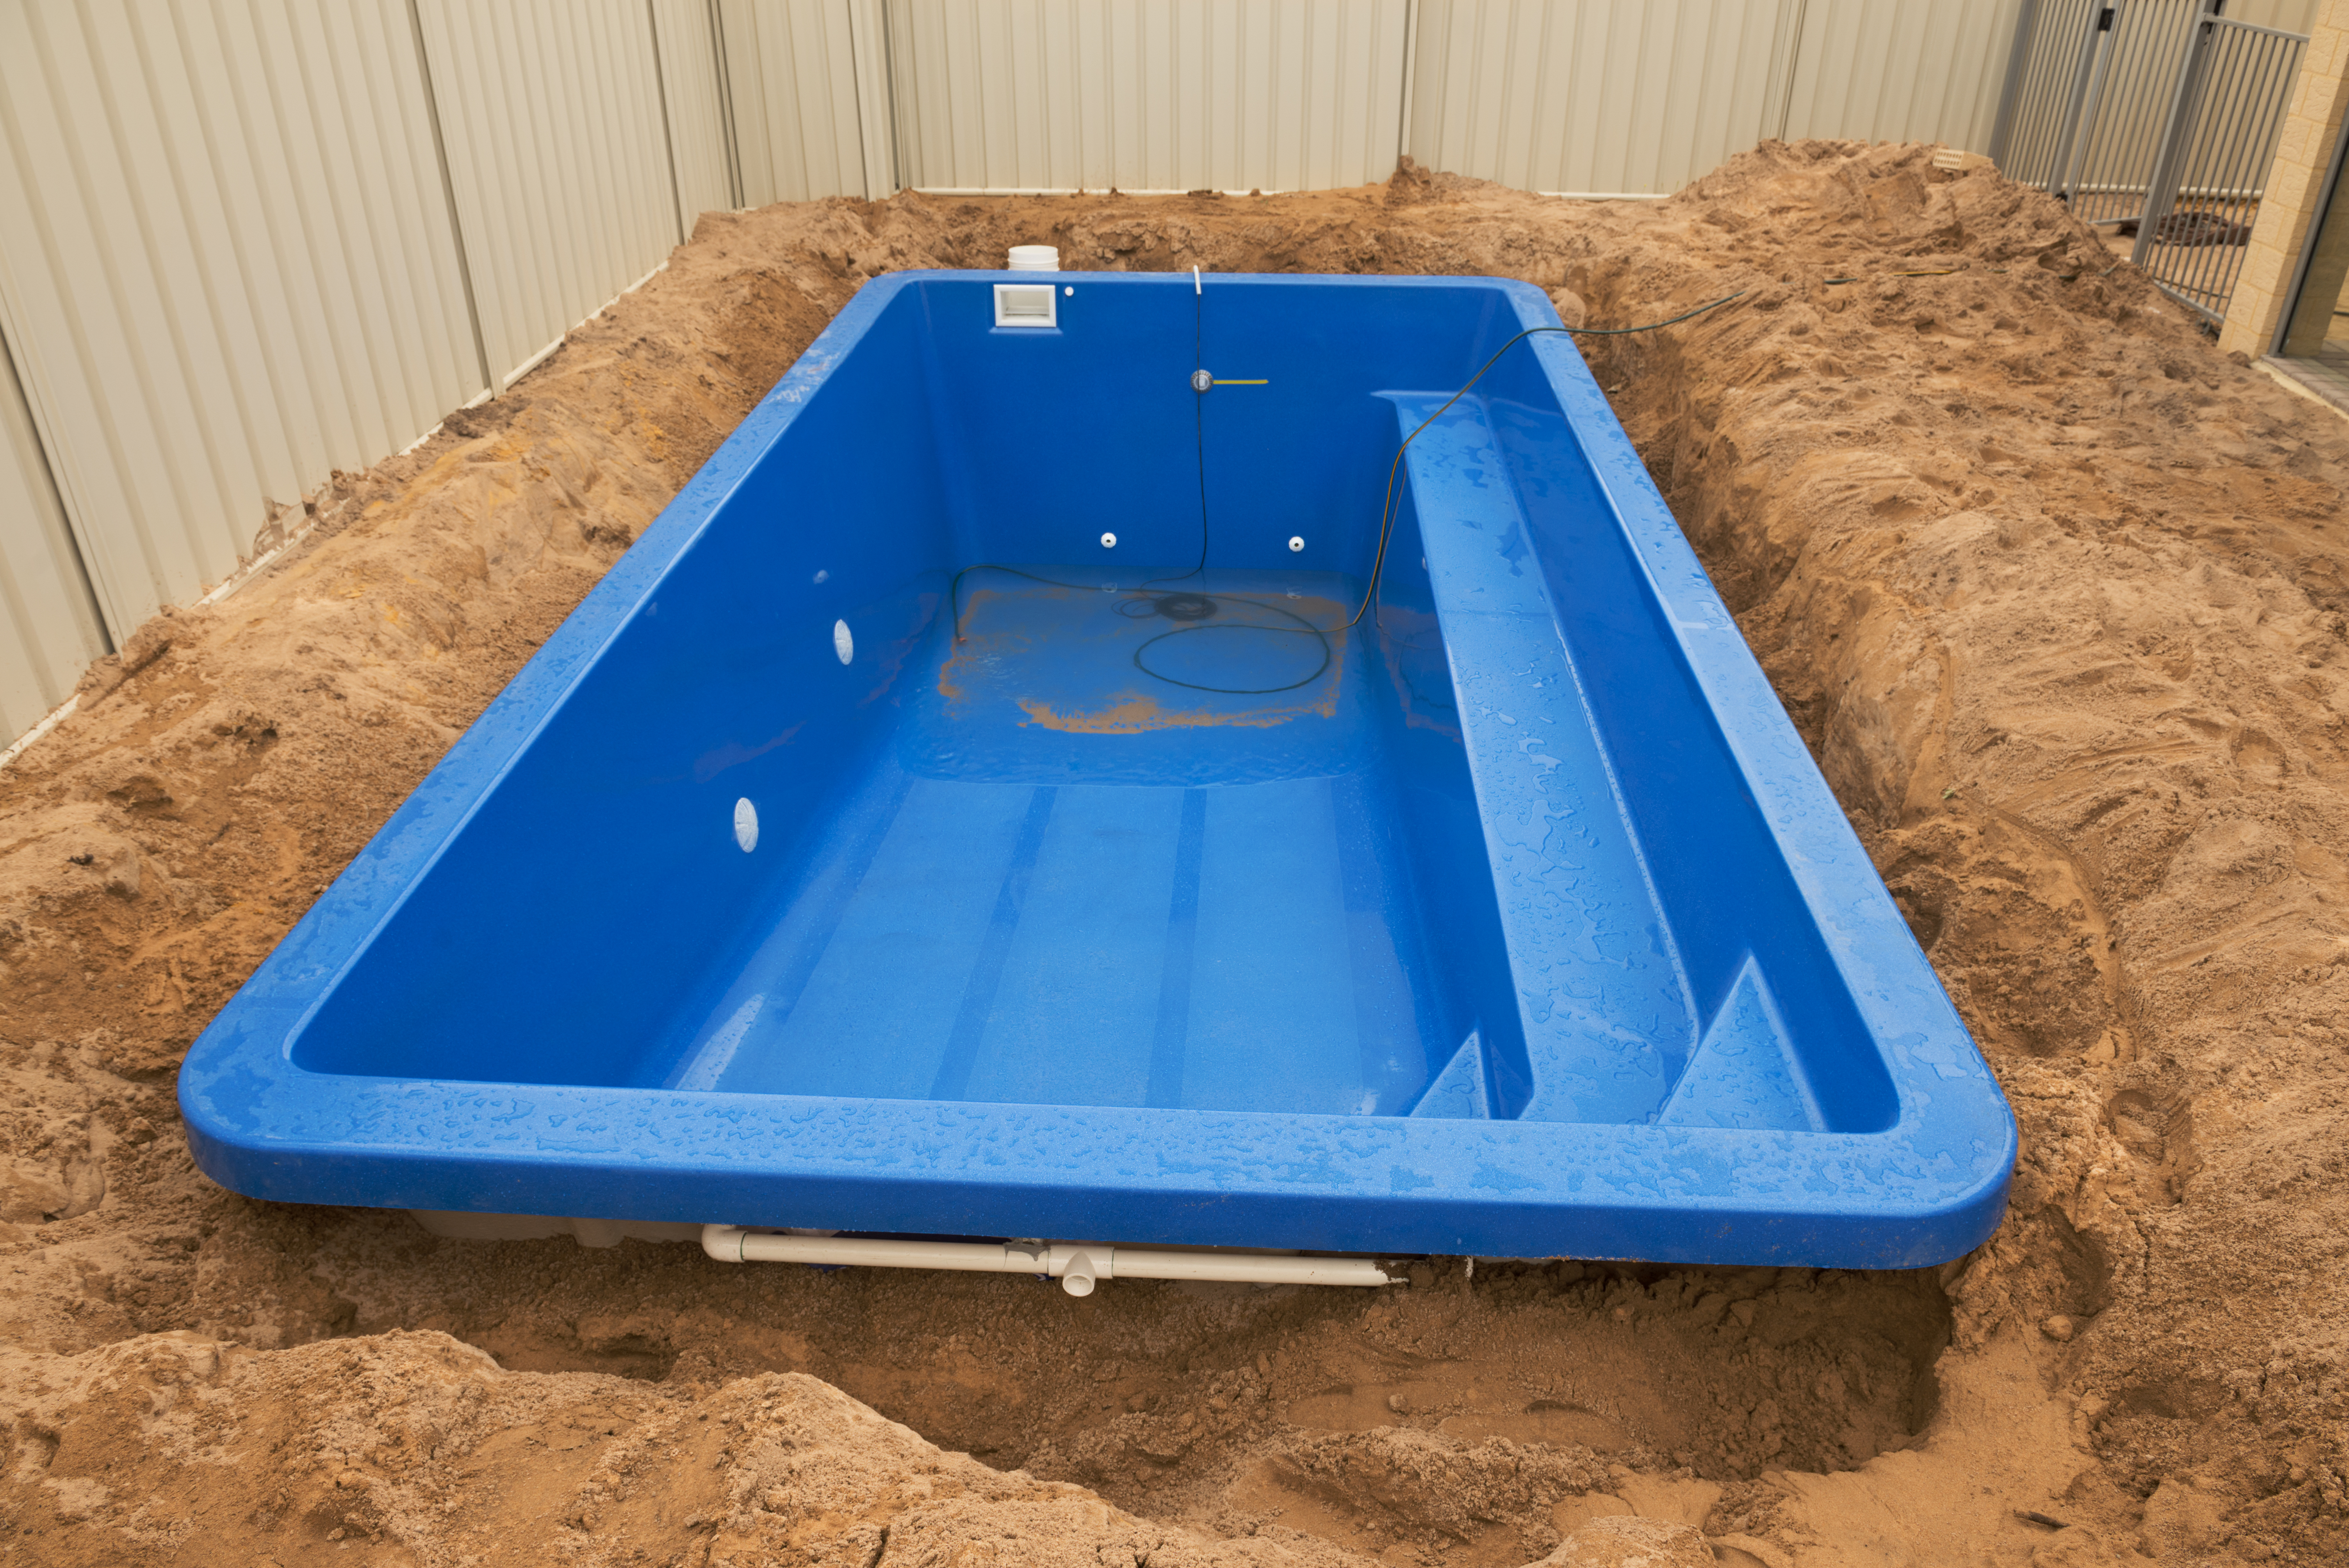 5 Reasons Why Fiberglass Pools Are the Best Option